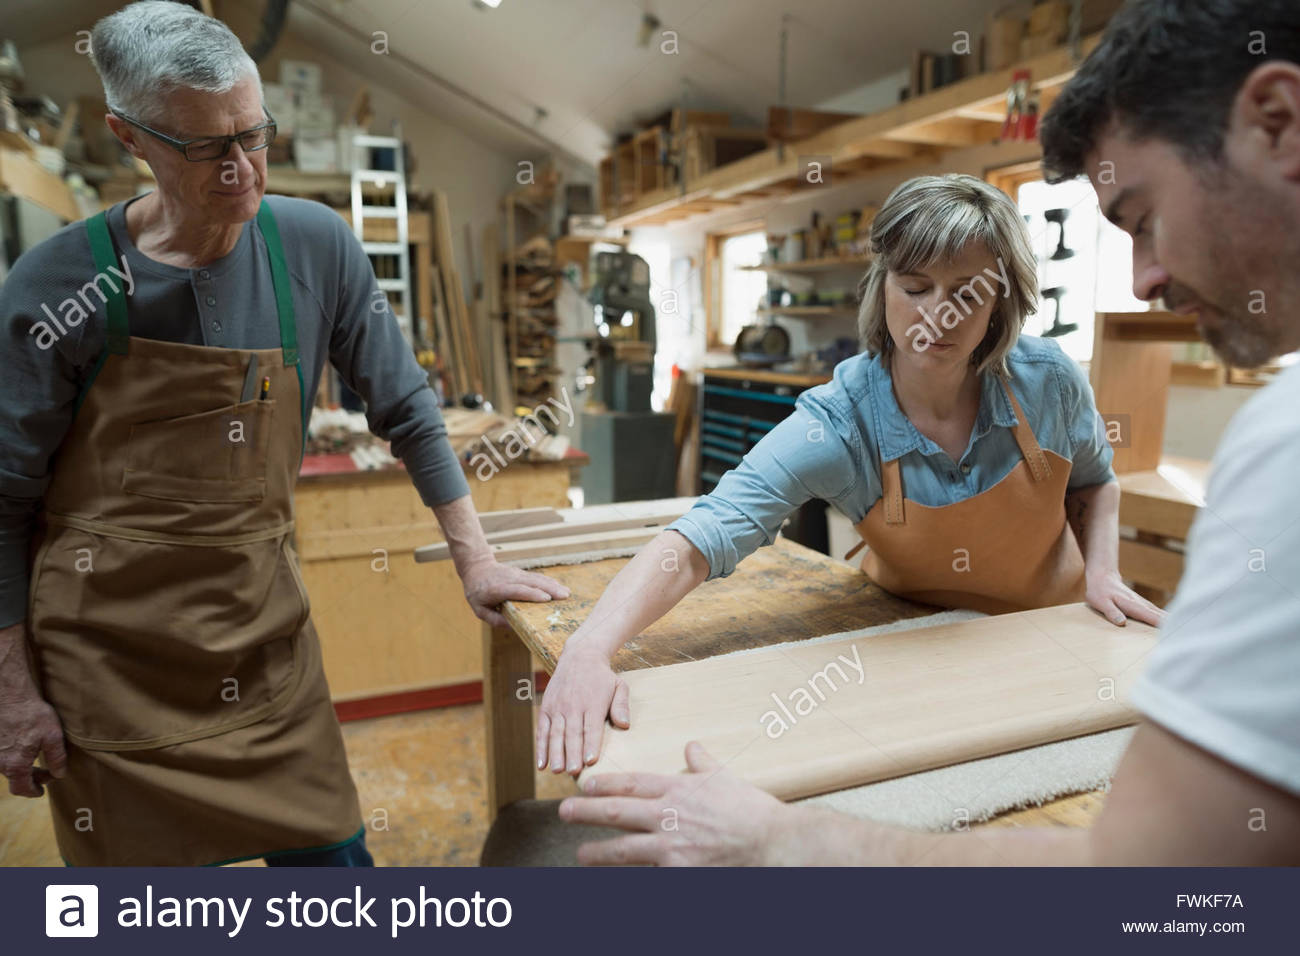 Carpenters examining wood piece in workshop - Stock Image